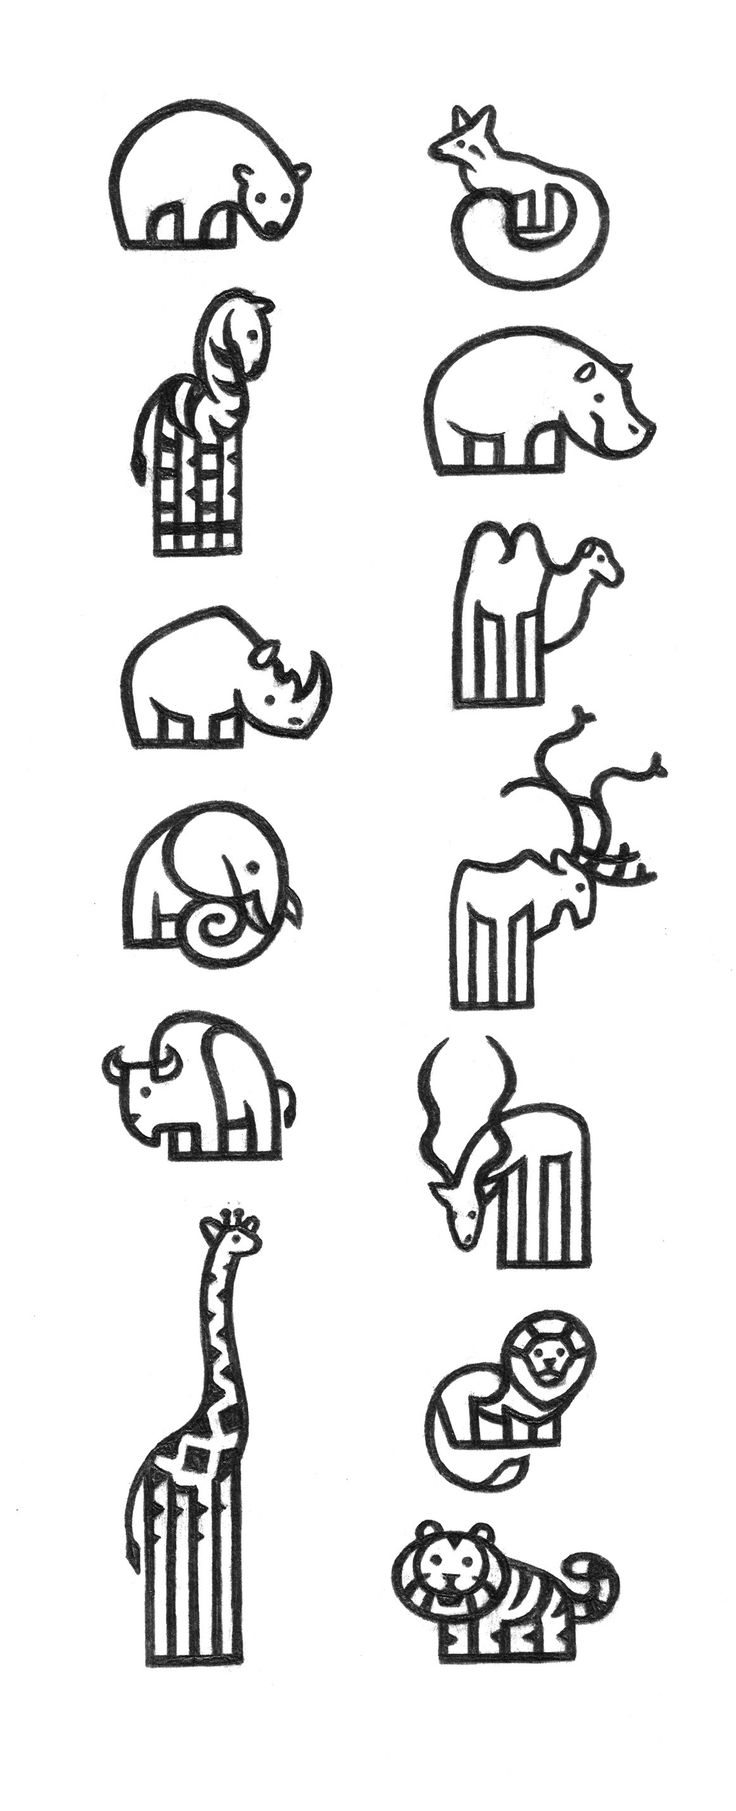 Pictograms - ZOO on Behance